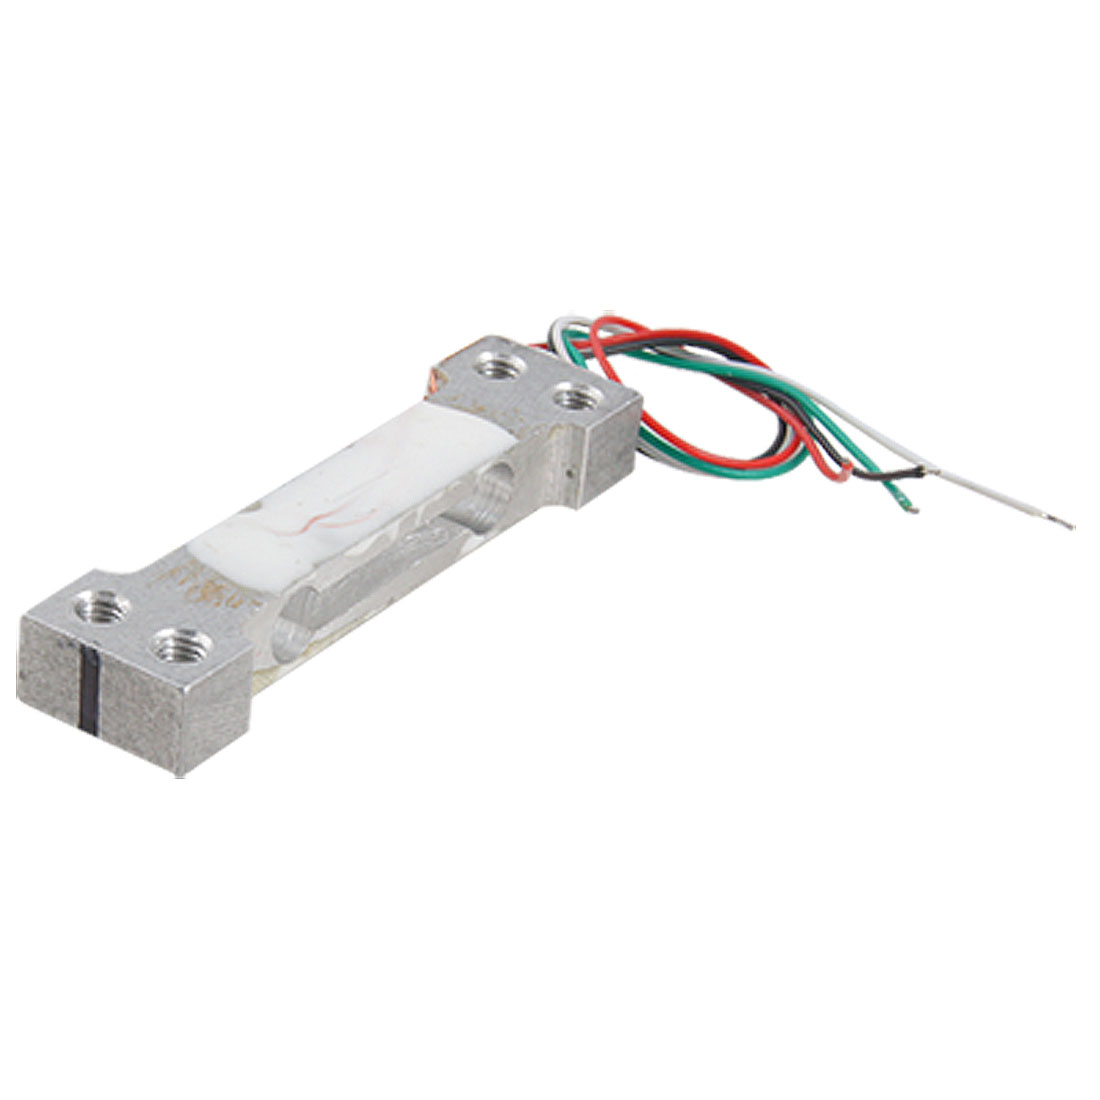 Electronic Scale Aluminium Alloy Weighing Sensor Load Cell 100g